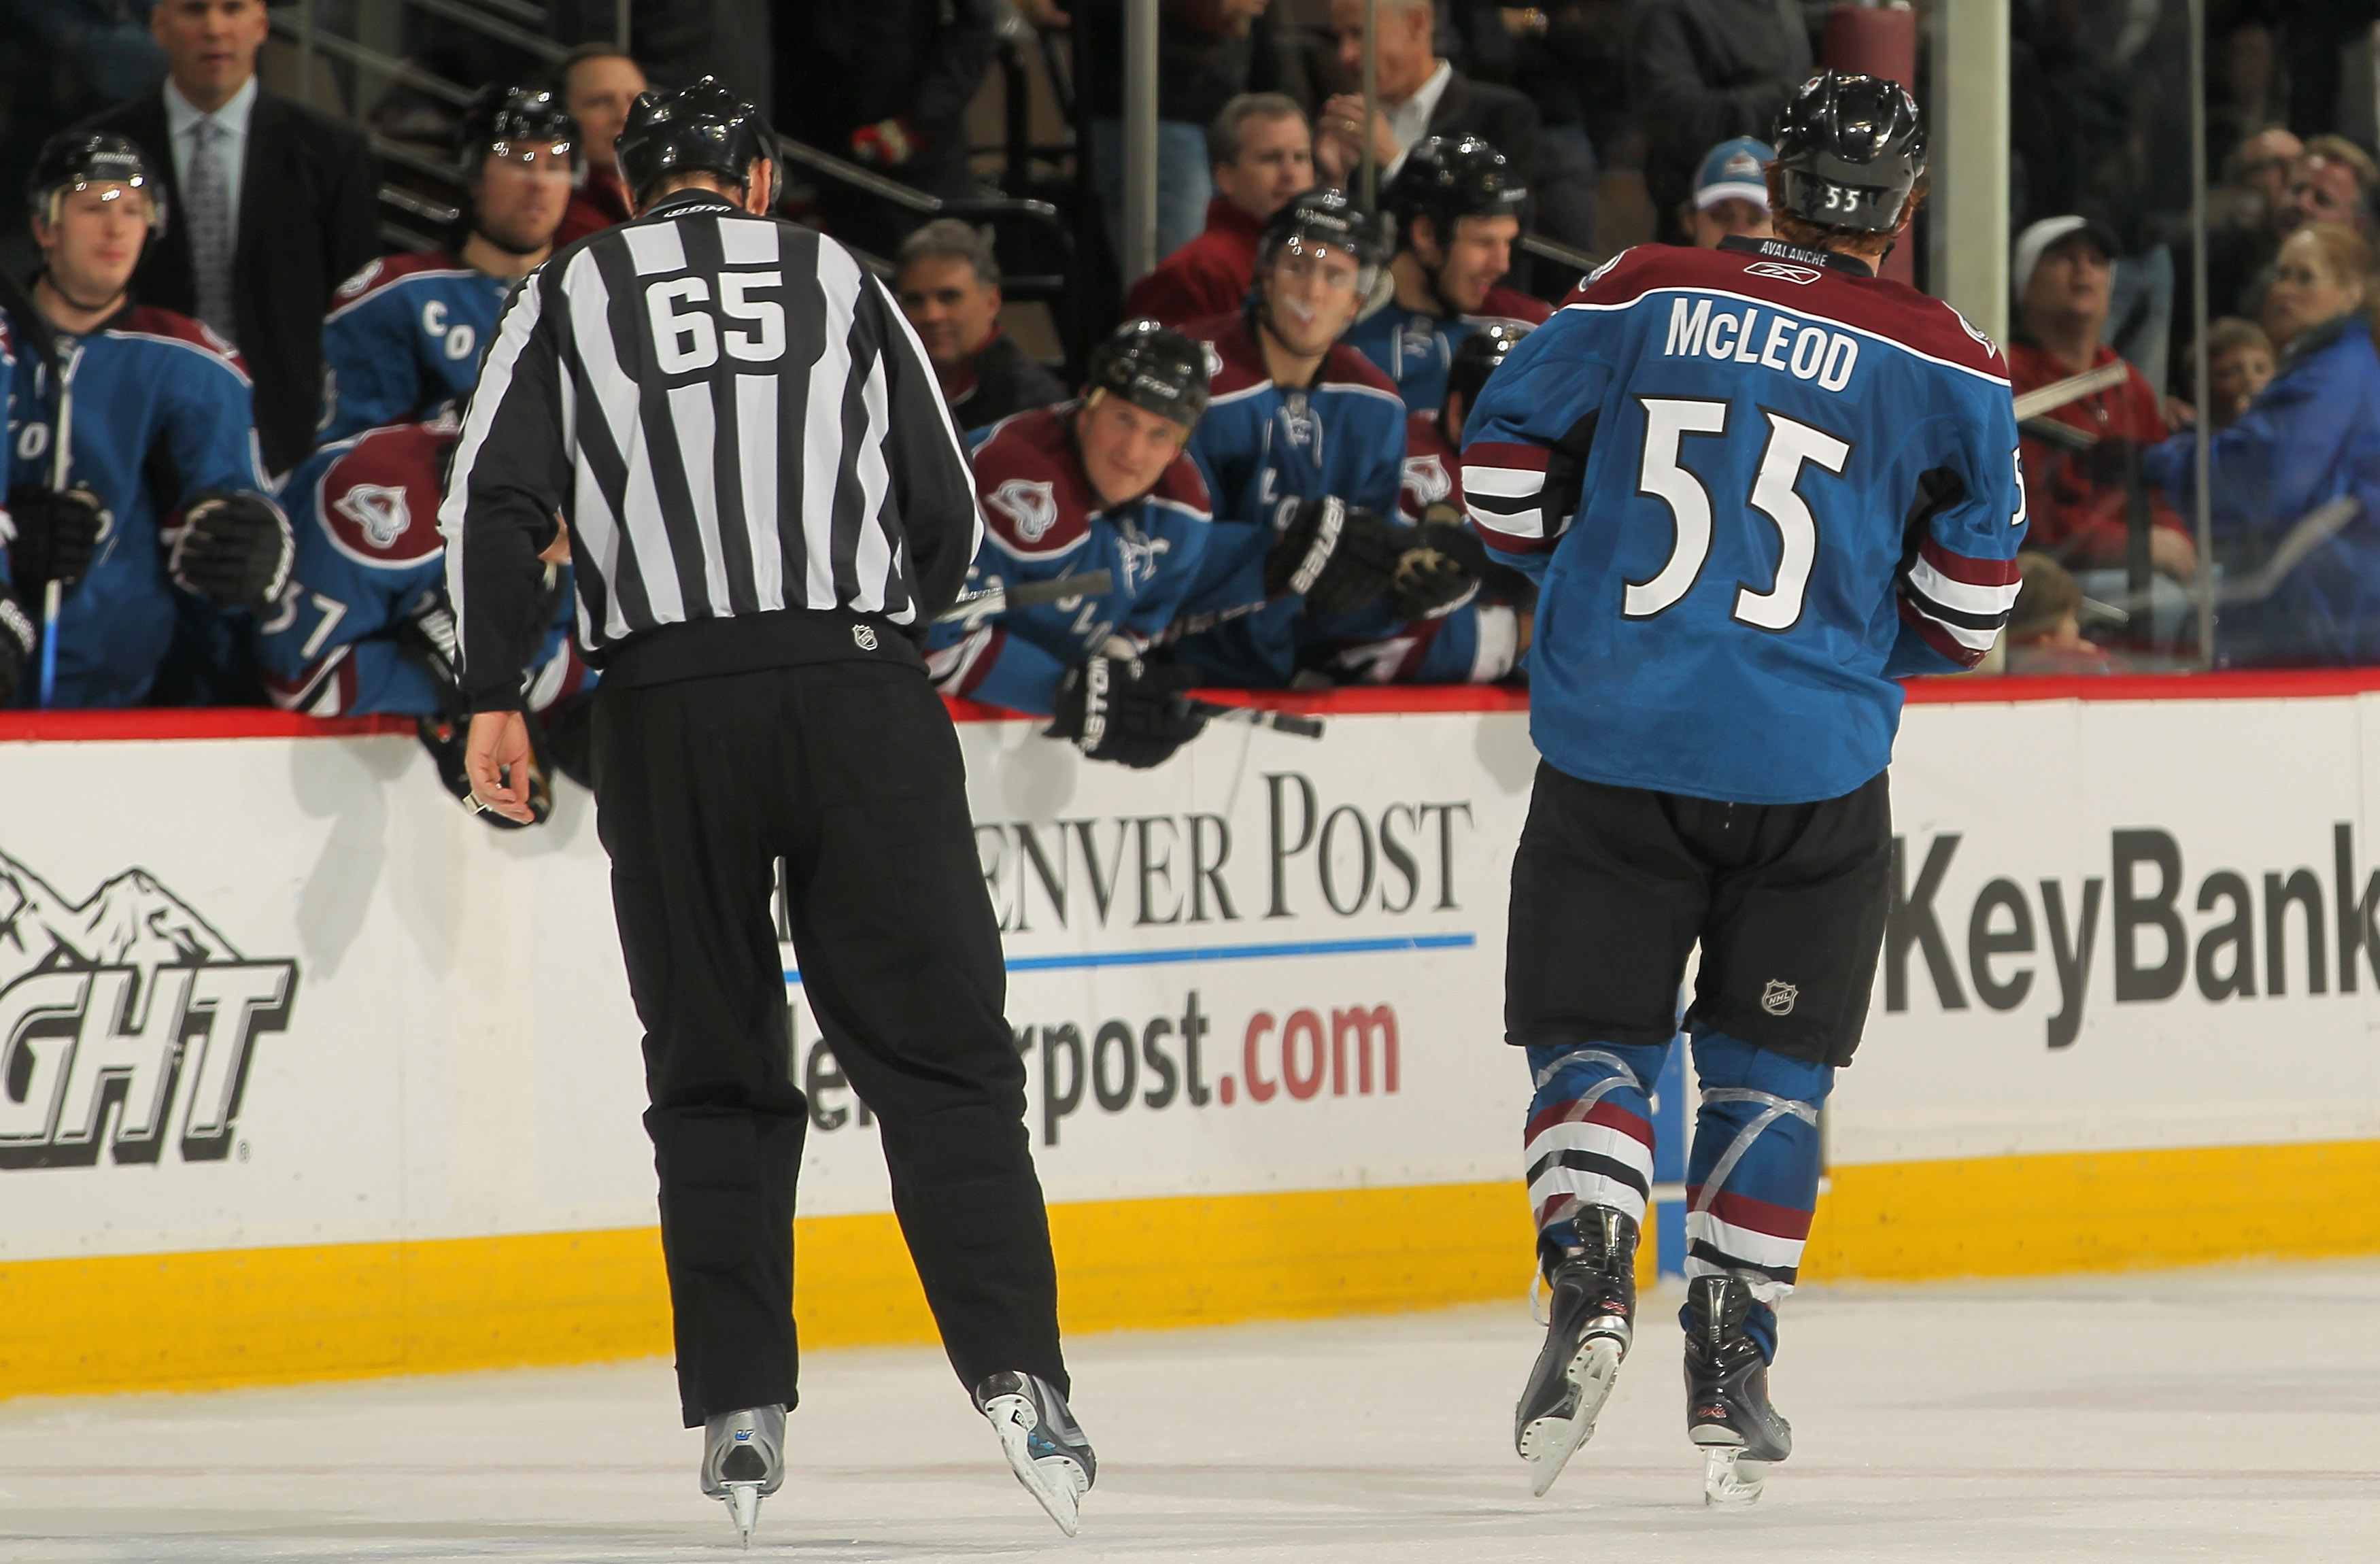 DENVER - NOVEMBER 19:  Cody McLeod #55 of the Colorado Avalanche is sent off the ice as he and Sean Avery #16 of the New York Rangers recieving misconduct penalties late in the third period at the Pepsi Center on November 19, 2010 in Denver, Colorado. The